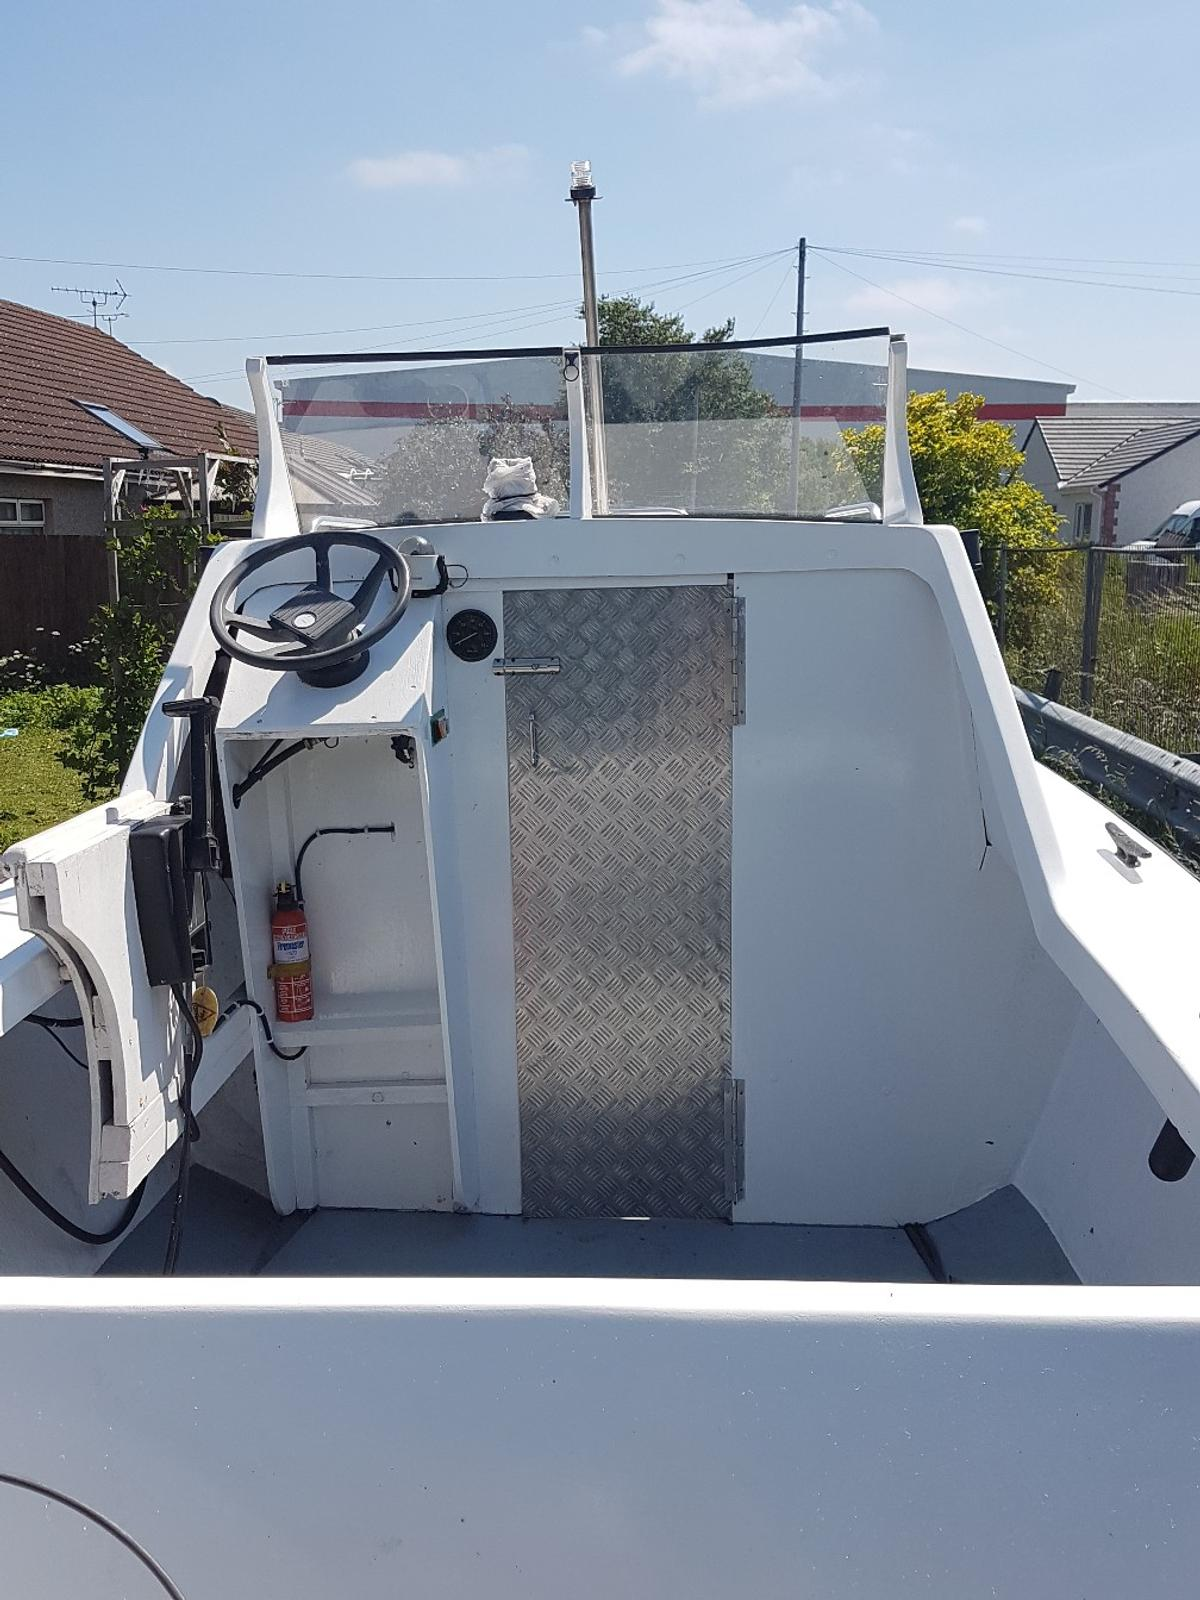 Fishing boat in CA14 Siddick for £1,300 00 for sale - Shpock